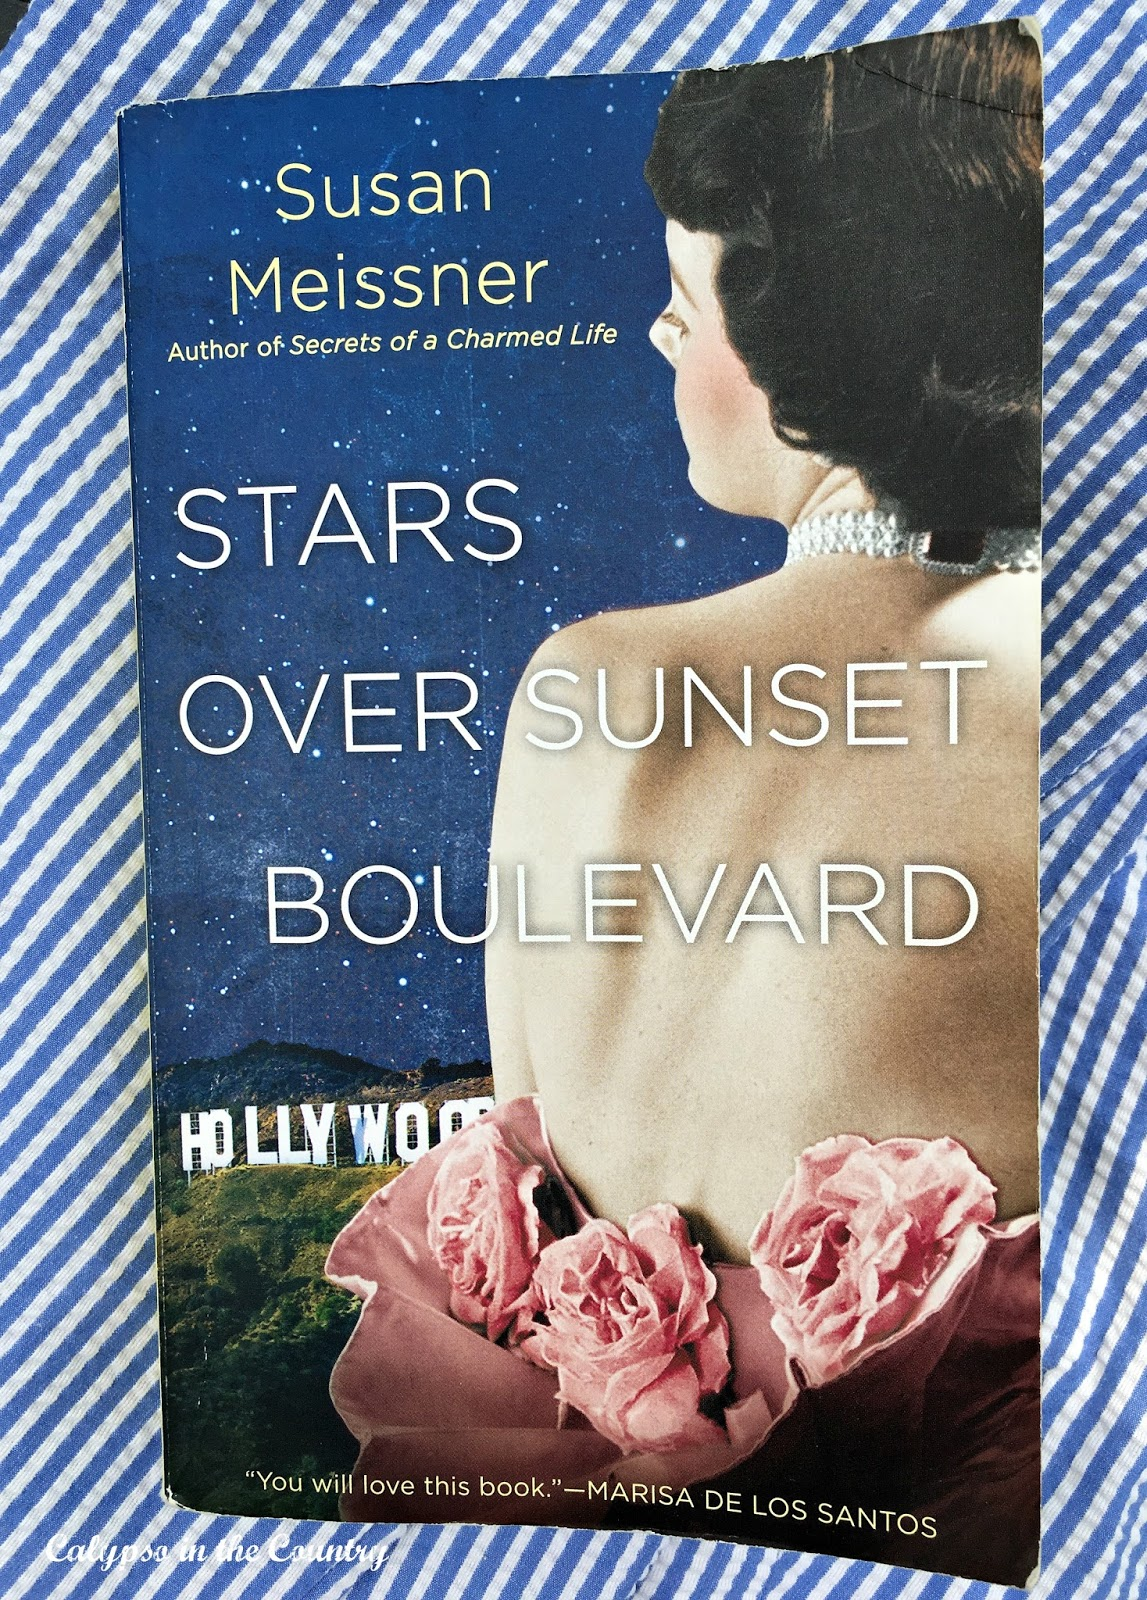 Stars Over Sunset Boulevard by Susan Meissner - a great book for the beach!